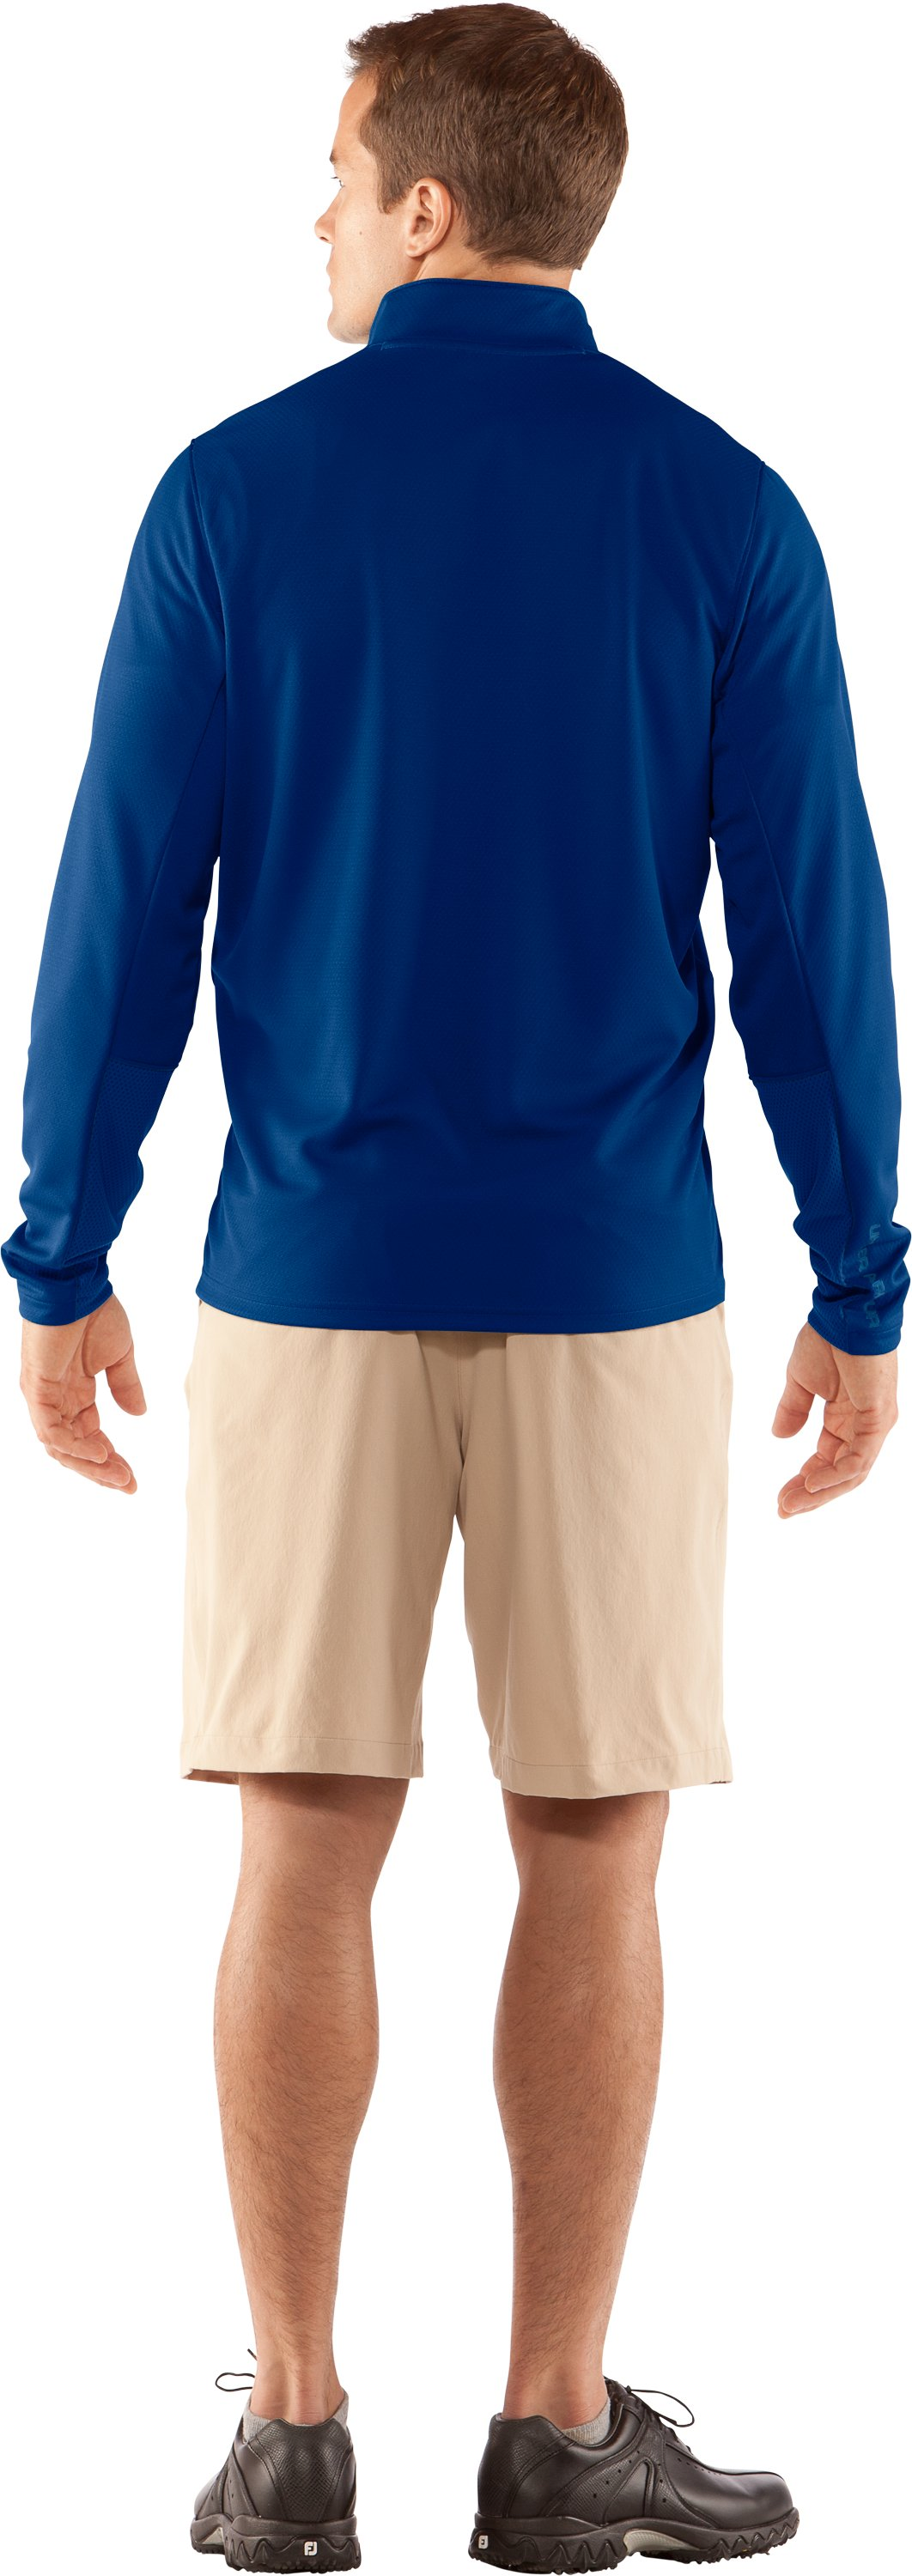 Men's AllSeasonGear® ¼ Zip Golf Jacket, EMPIRE BLUE, Back